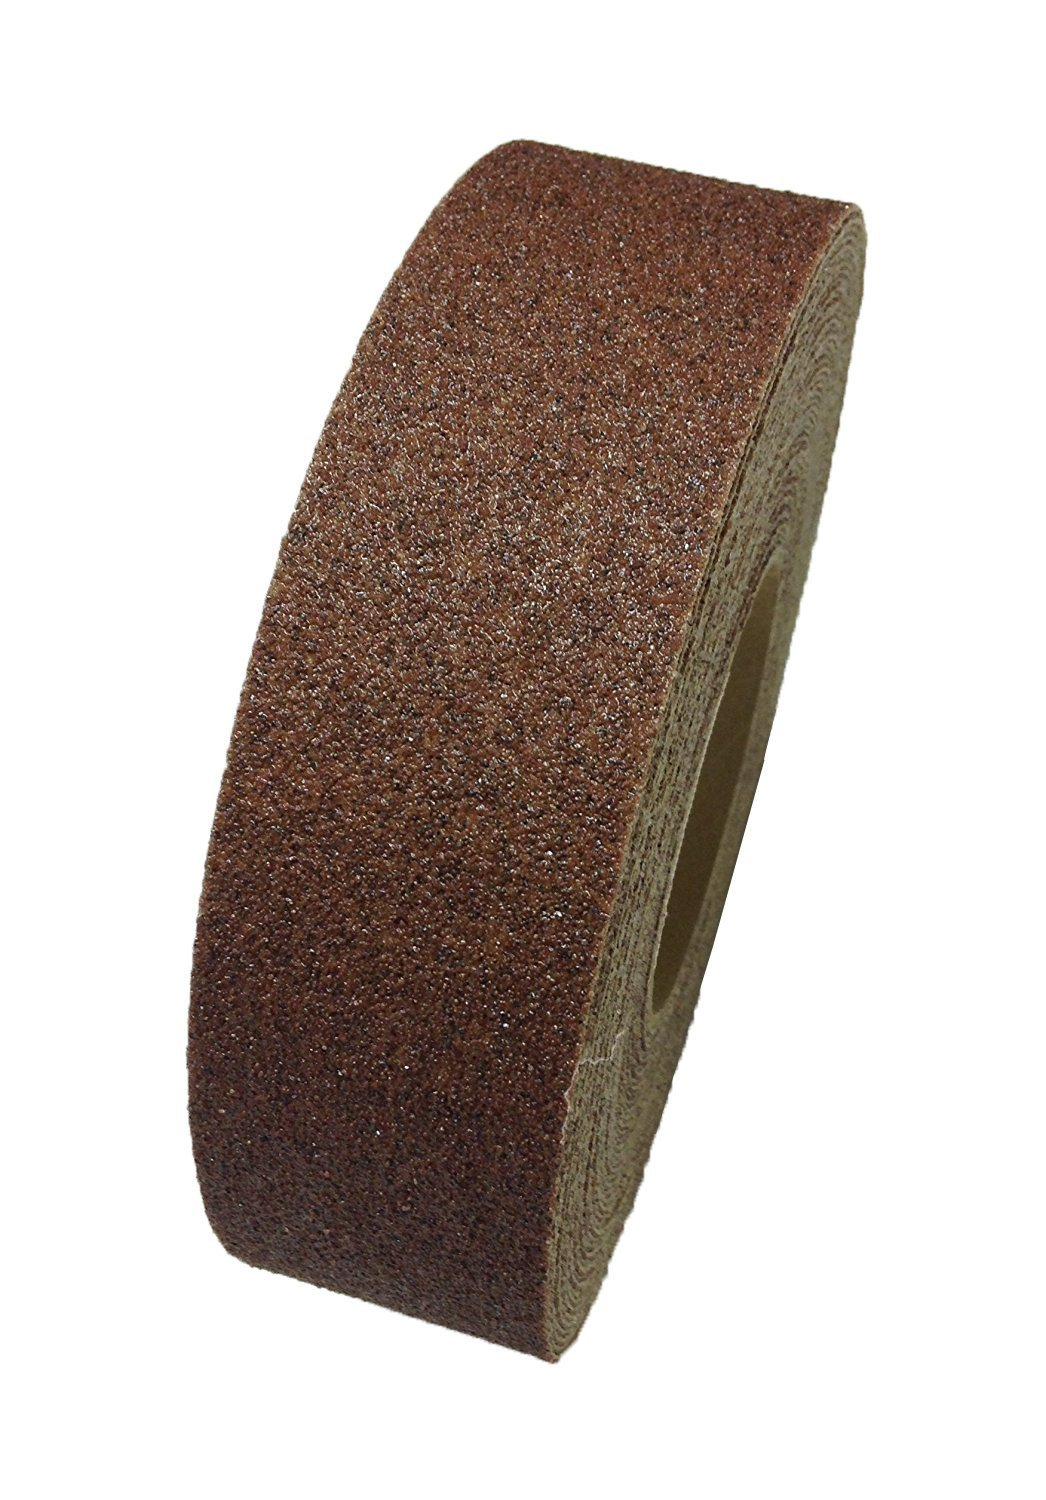 Safe Way Traction 2'' X 12' Roll Brown Abrasive Grit Anti Slip Non Skid Adhesive Safety Tape Made in the USA by Sure-Foot Industries 88206-12